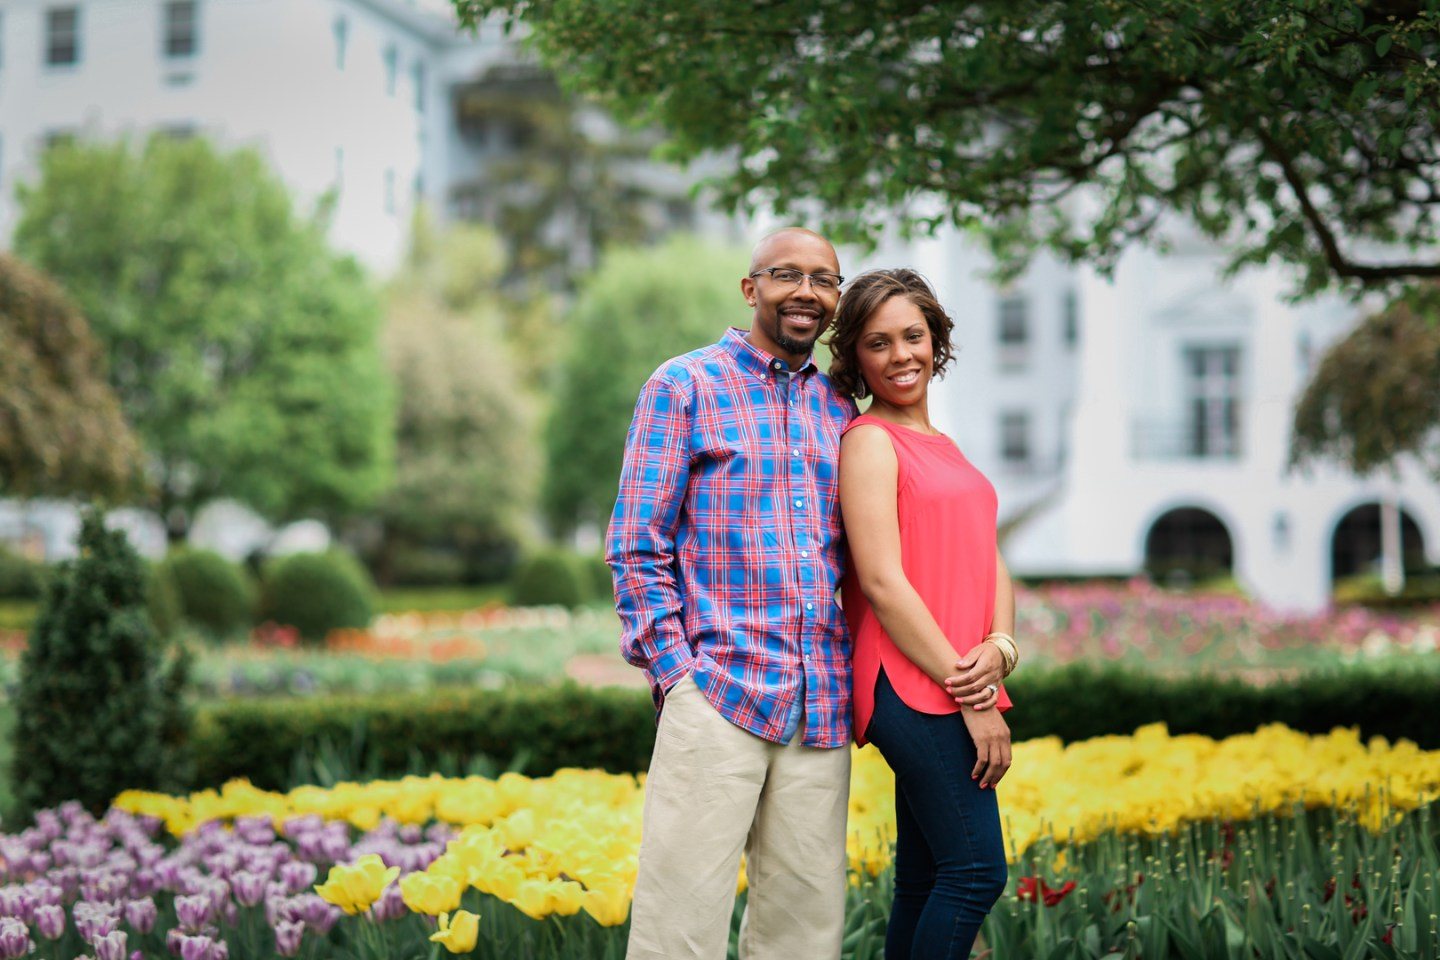 d3jy6qid73v24xq2vh71_big West Virginia Engagement Session at the Greenbriar Resort